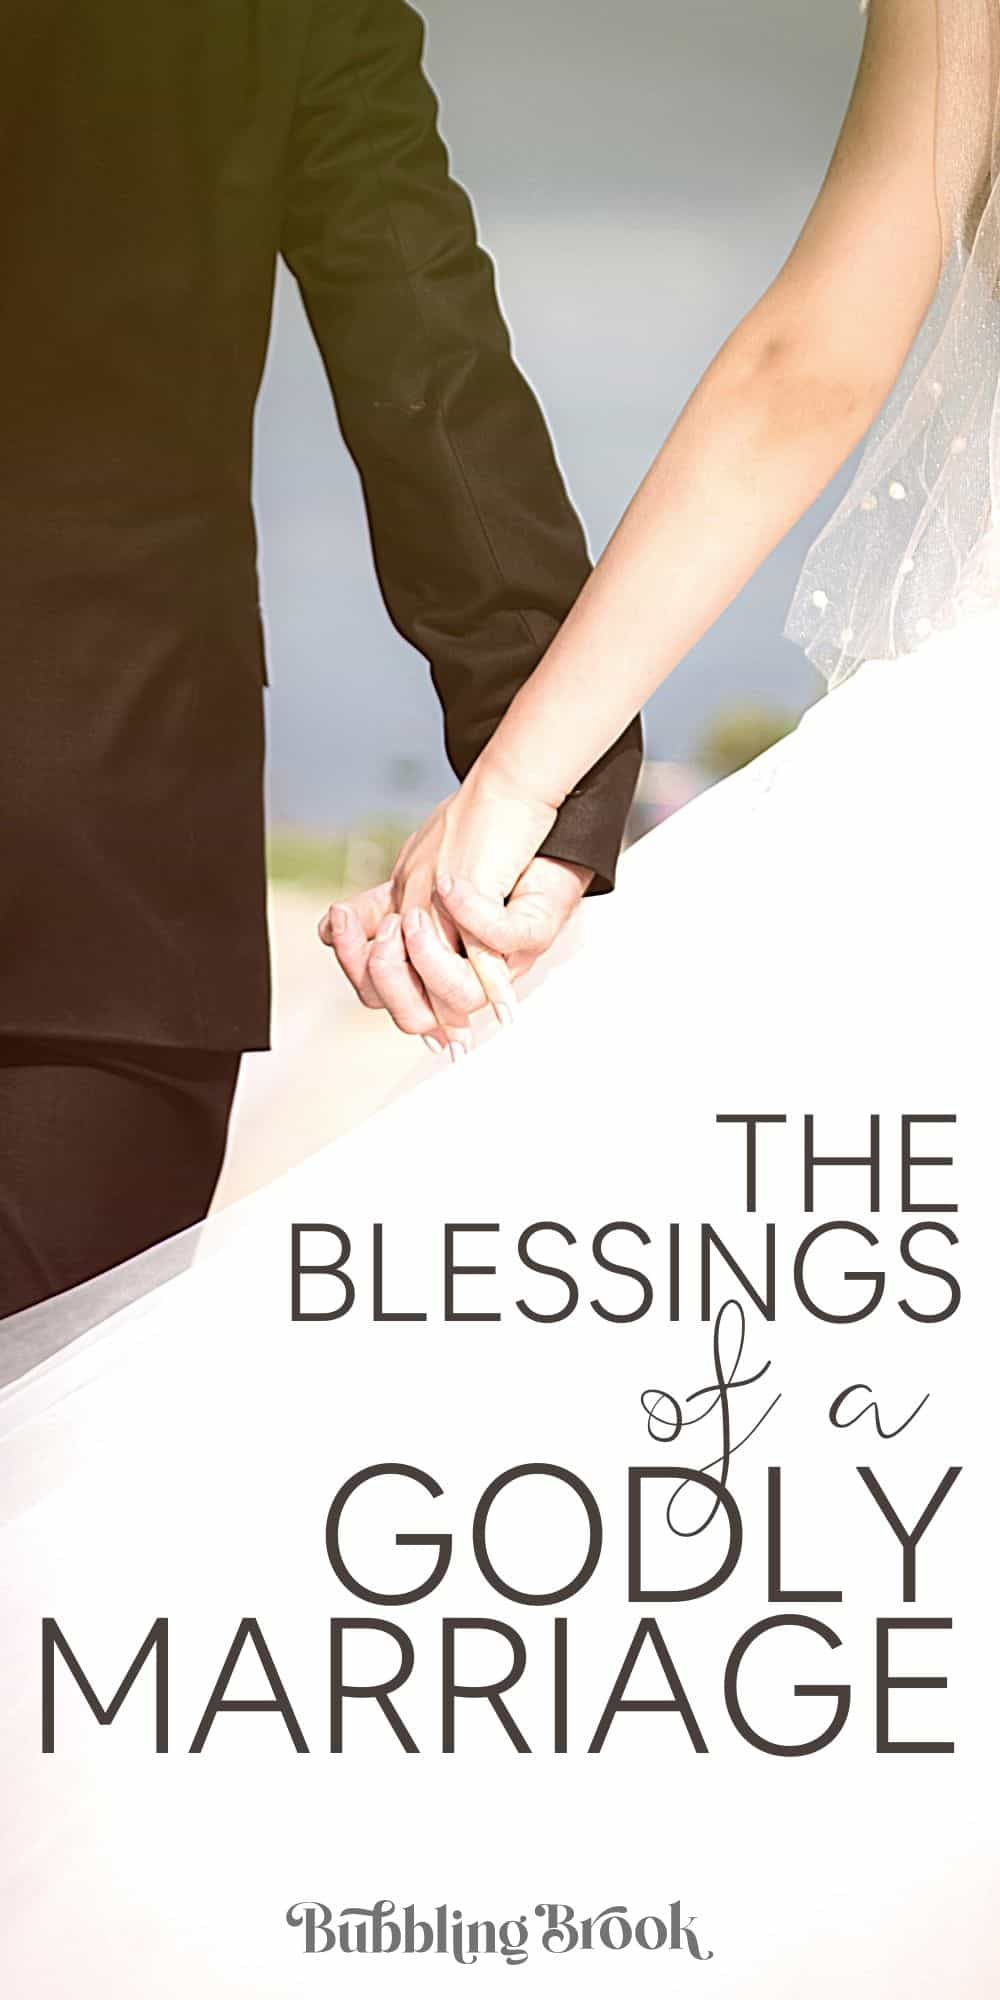 The blessings of a godly marriage - pin for pinterest